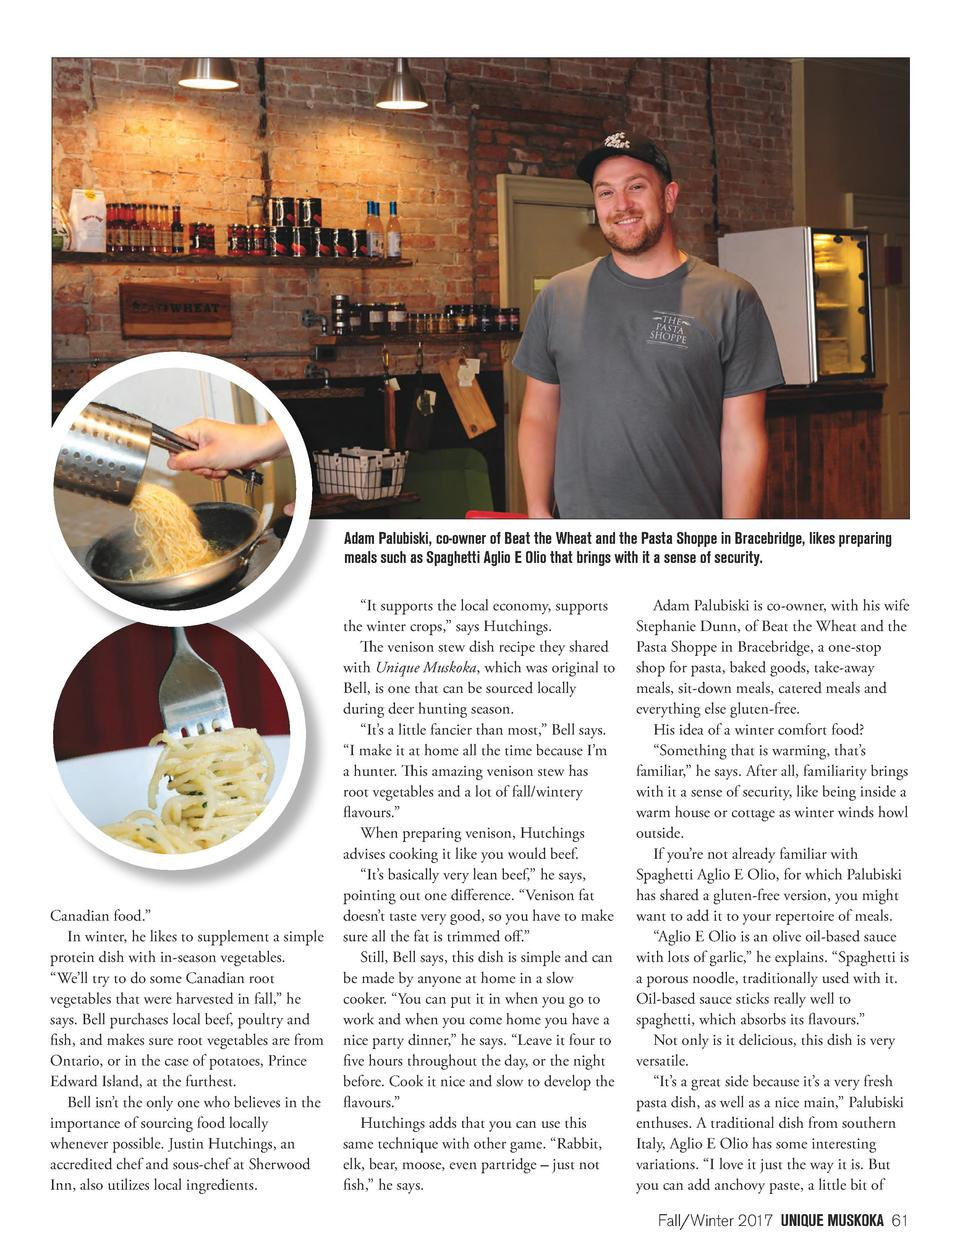 Adam Palubiski, co-owner of Beat the Wheat and the Pasta Shoppe in Bracebridge, likes preparing meals such as Spaghetti Ag...